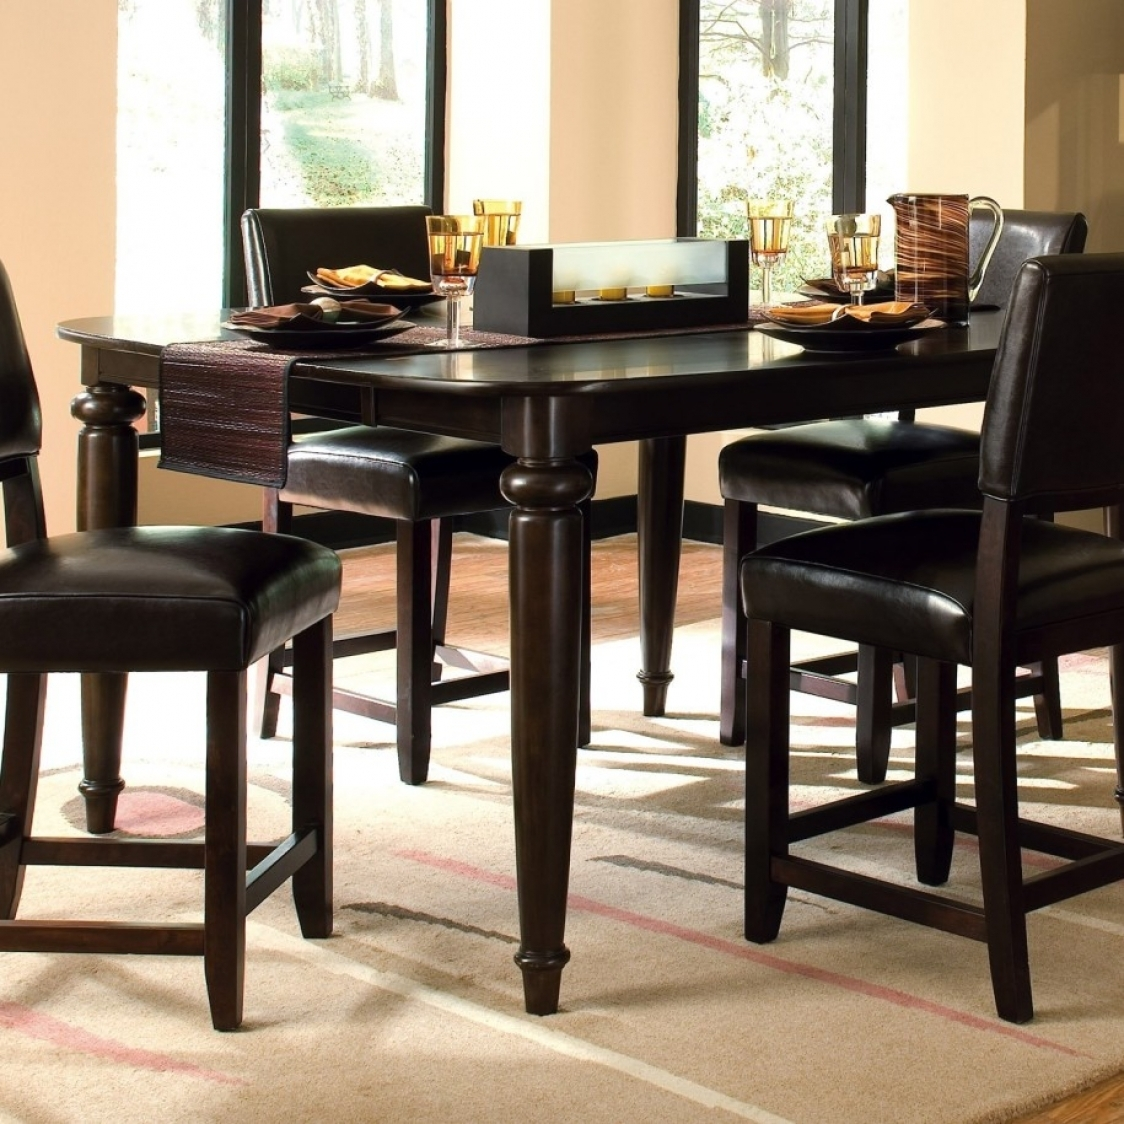 Permalink to Black High Top Kitchen Table Sets